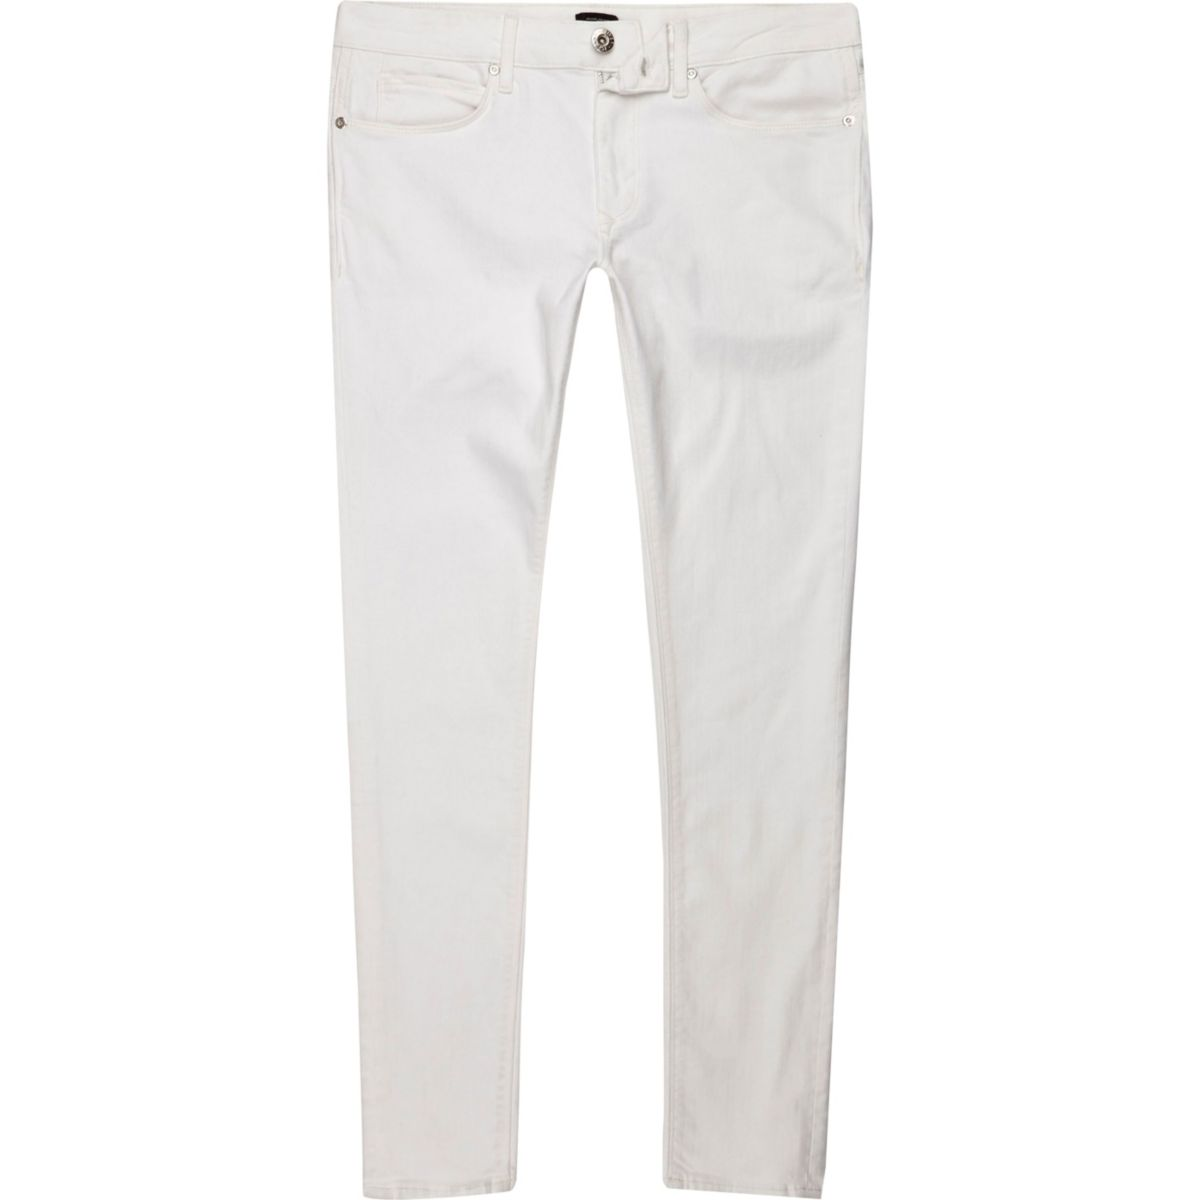 White Ollie super skinny spray on jeans